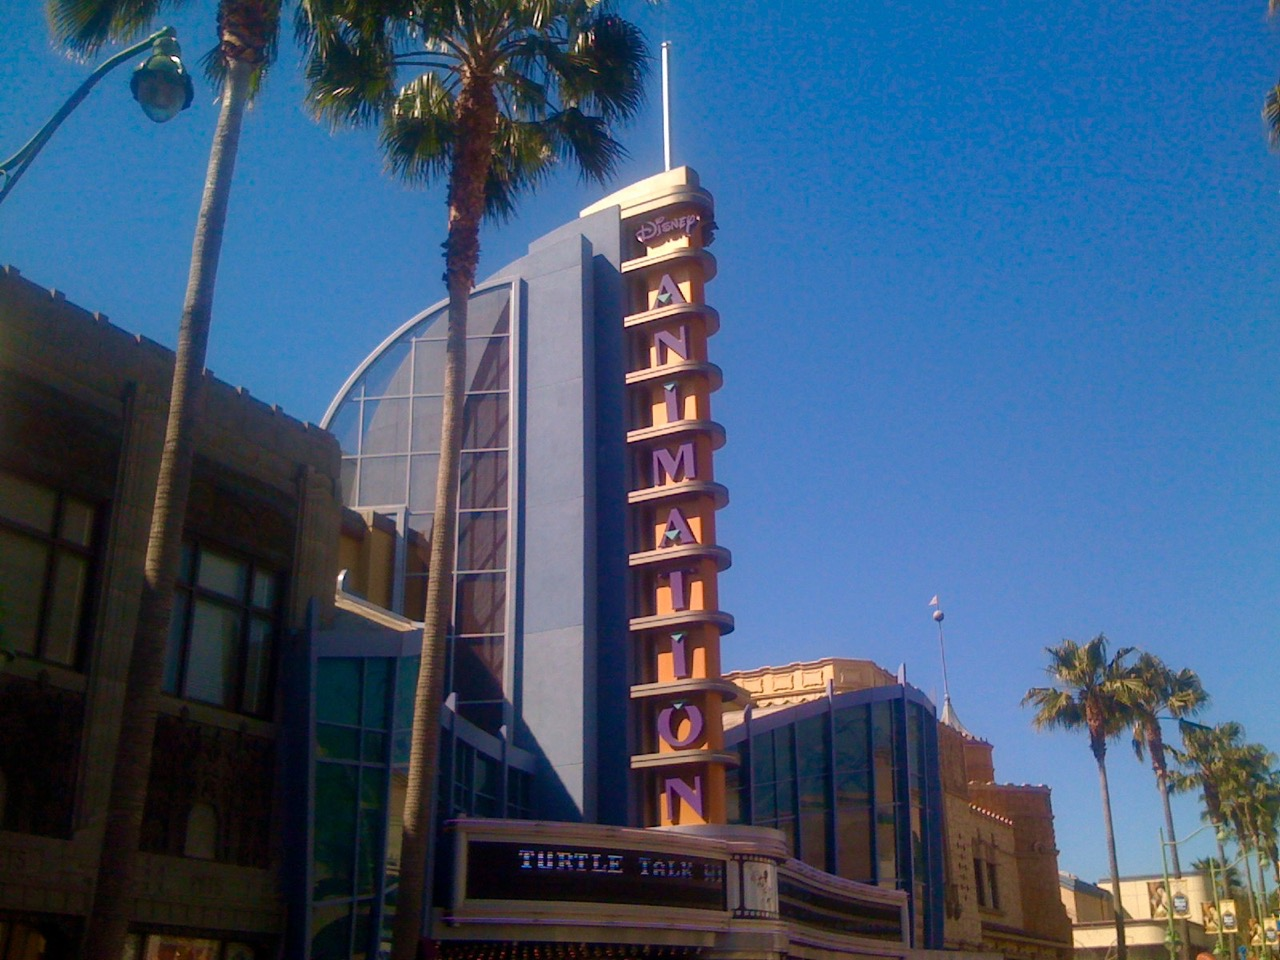 The bright California Sign highlights the Disney Animation Academy, but it's the beautifully rendered drawings shown on the screens therein that really attracts guests. Photo by J. Jeff Kober.